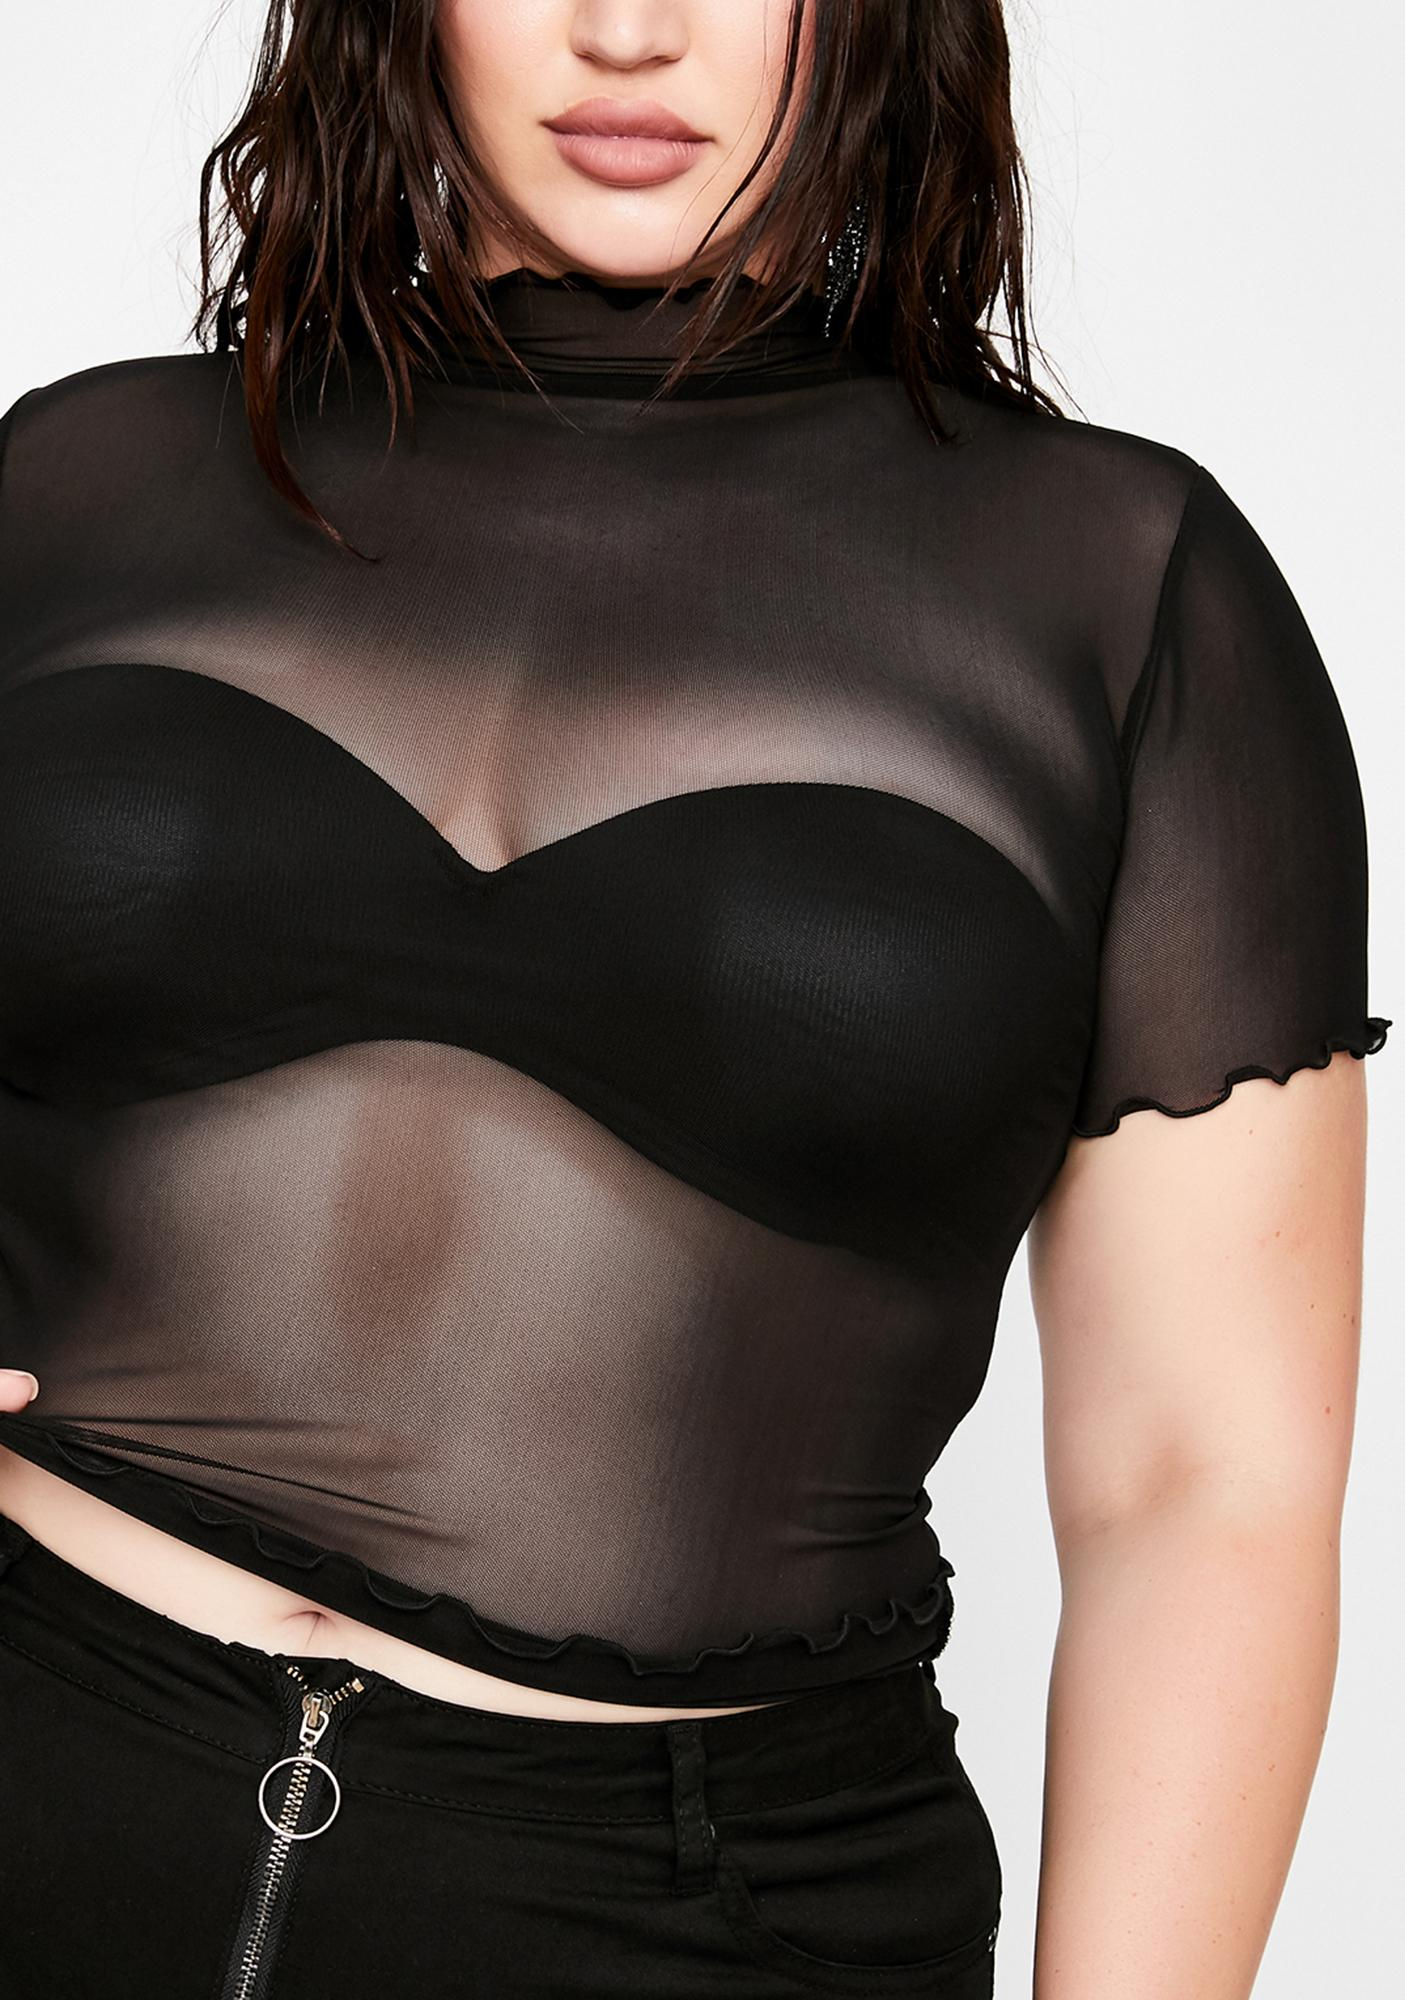 Her Lil Preview Sheer Top